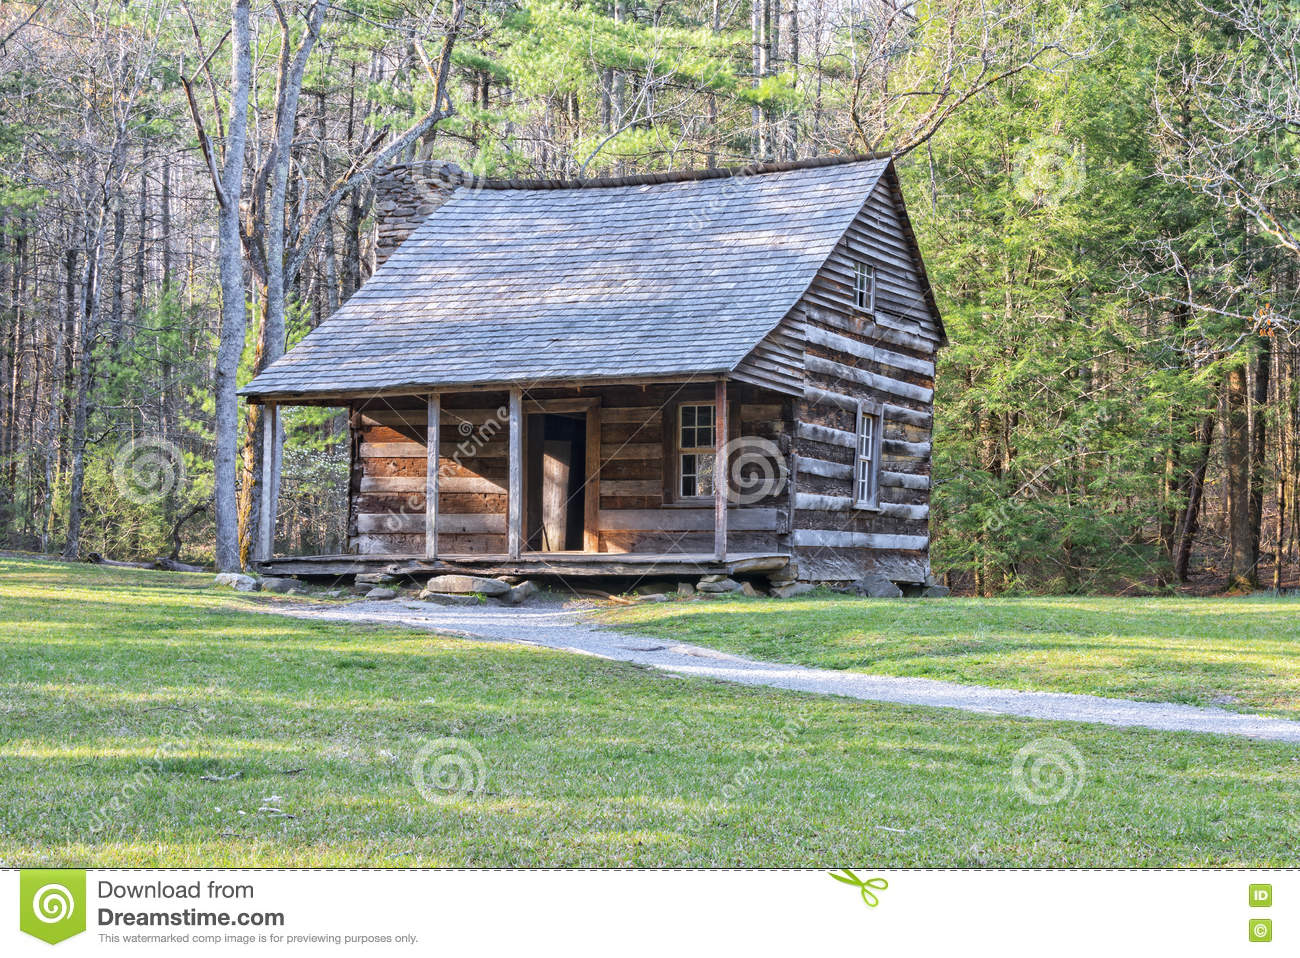 Carter Shields Cabin in Cades-Inham